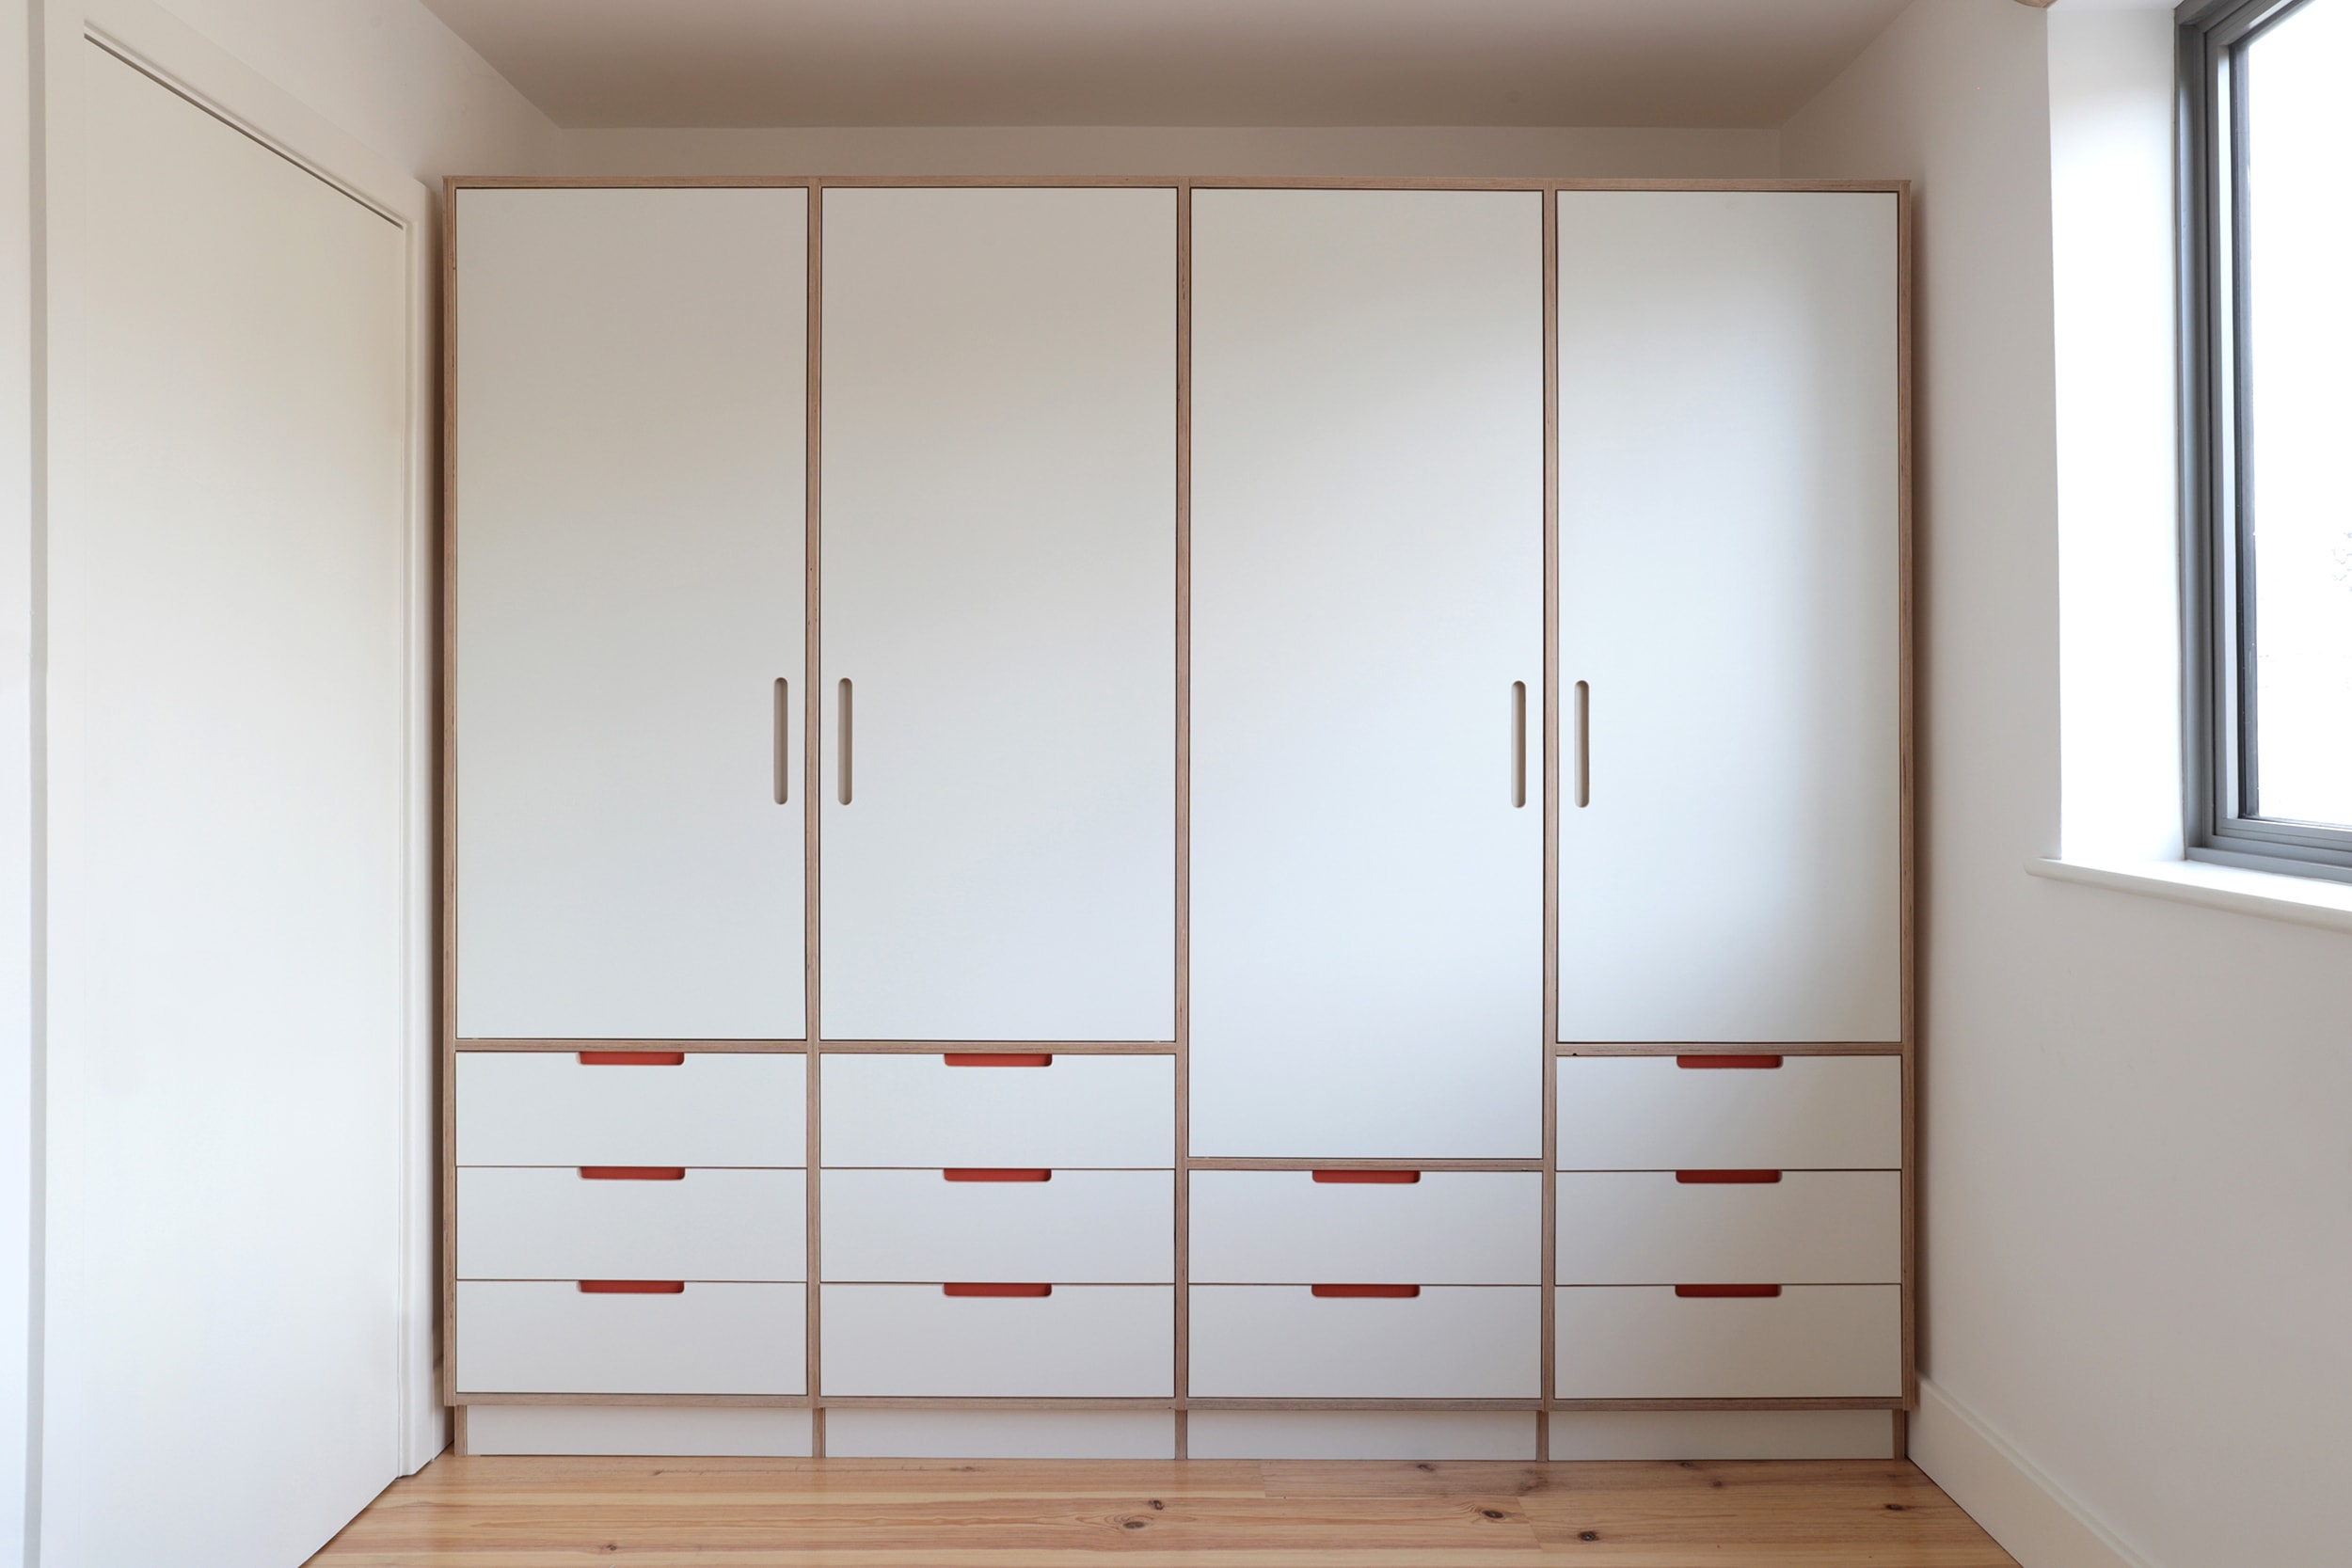 Ilaria's clean bespoke plywood kids wardrobe designed by Lozi in her home in East London